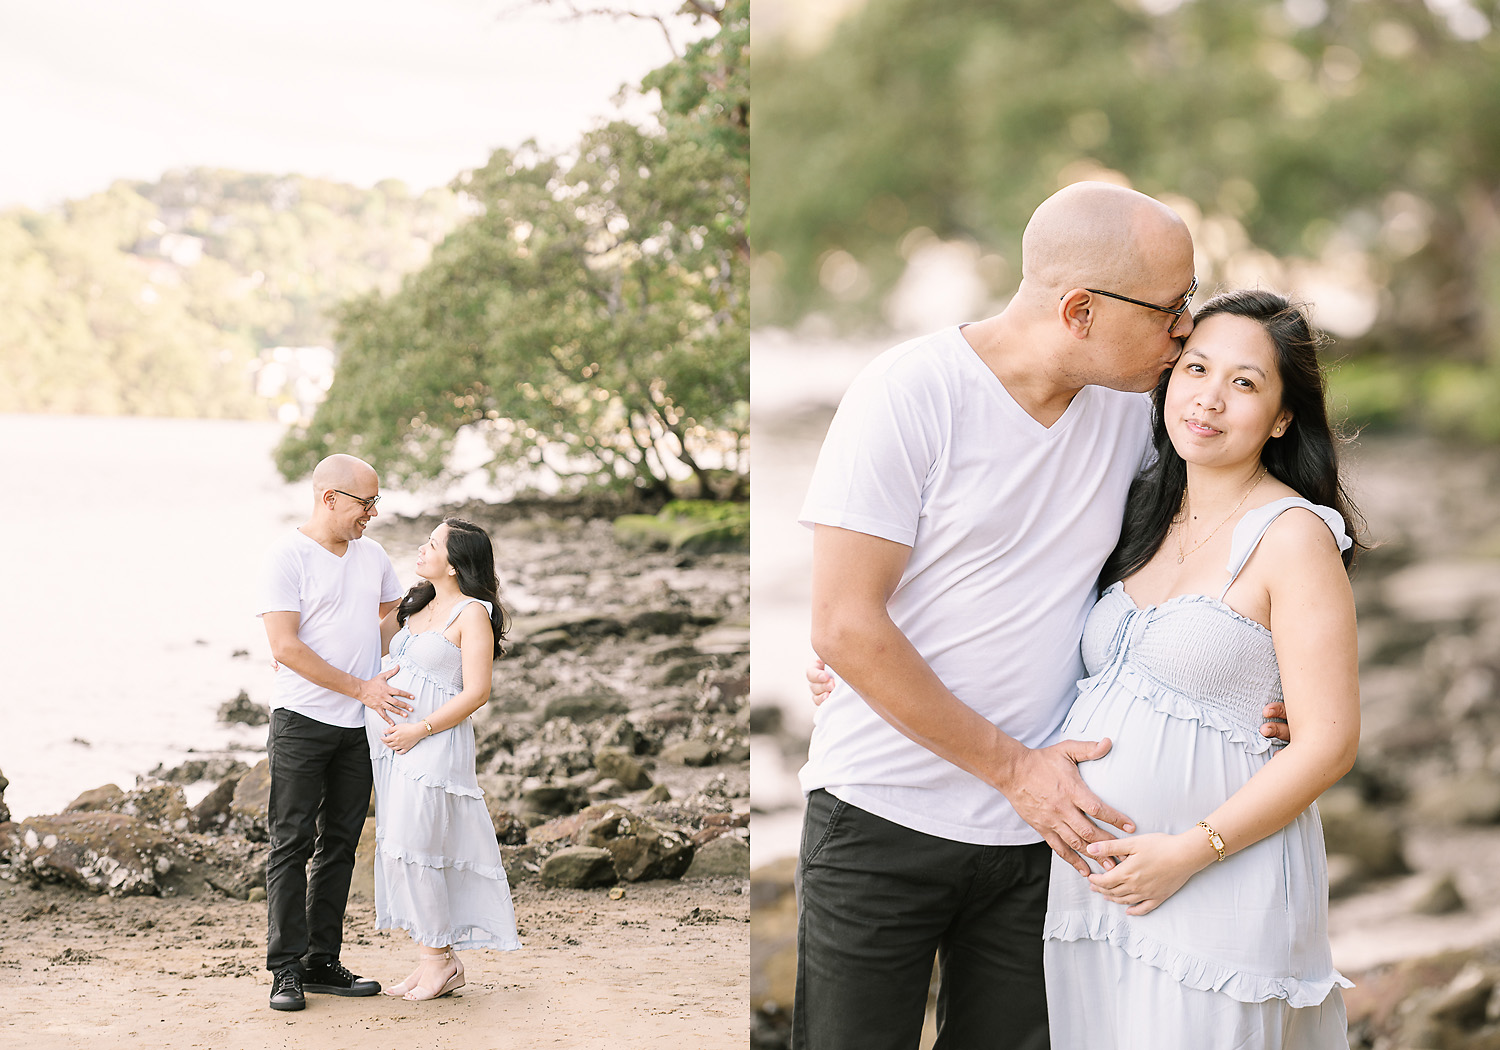 Two images side by side. First image of man smiling broadly at pregnant woman, second image of man kissing woman and holding pregnant belly as photographed by Sutherland Shire Maternity Photographer Sevenish Photography